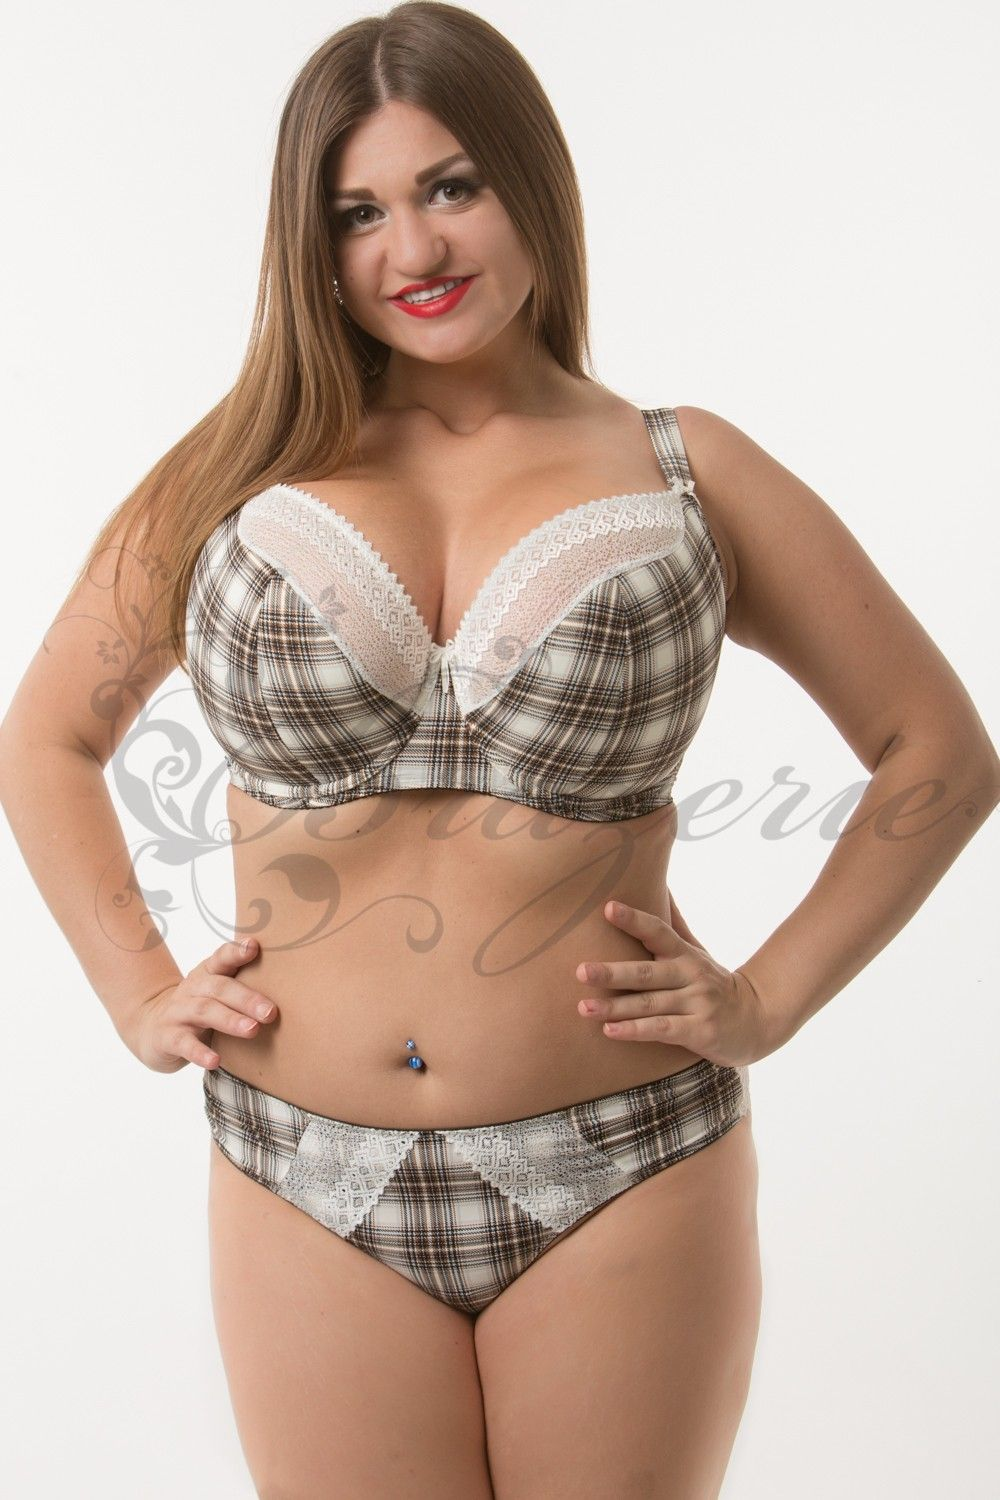 4967ce6eb6a Bra with checkered print on the chest of a big Lupoline - BRAZERIE ...